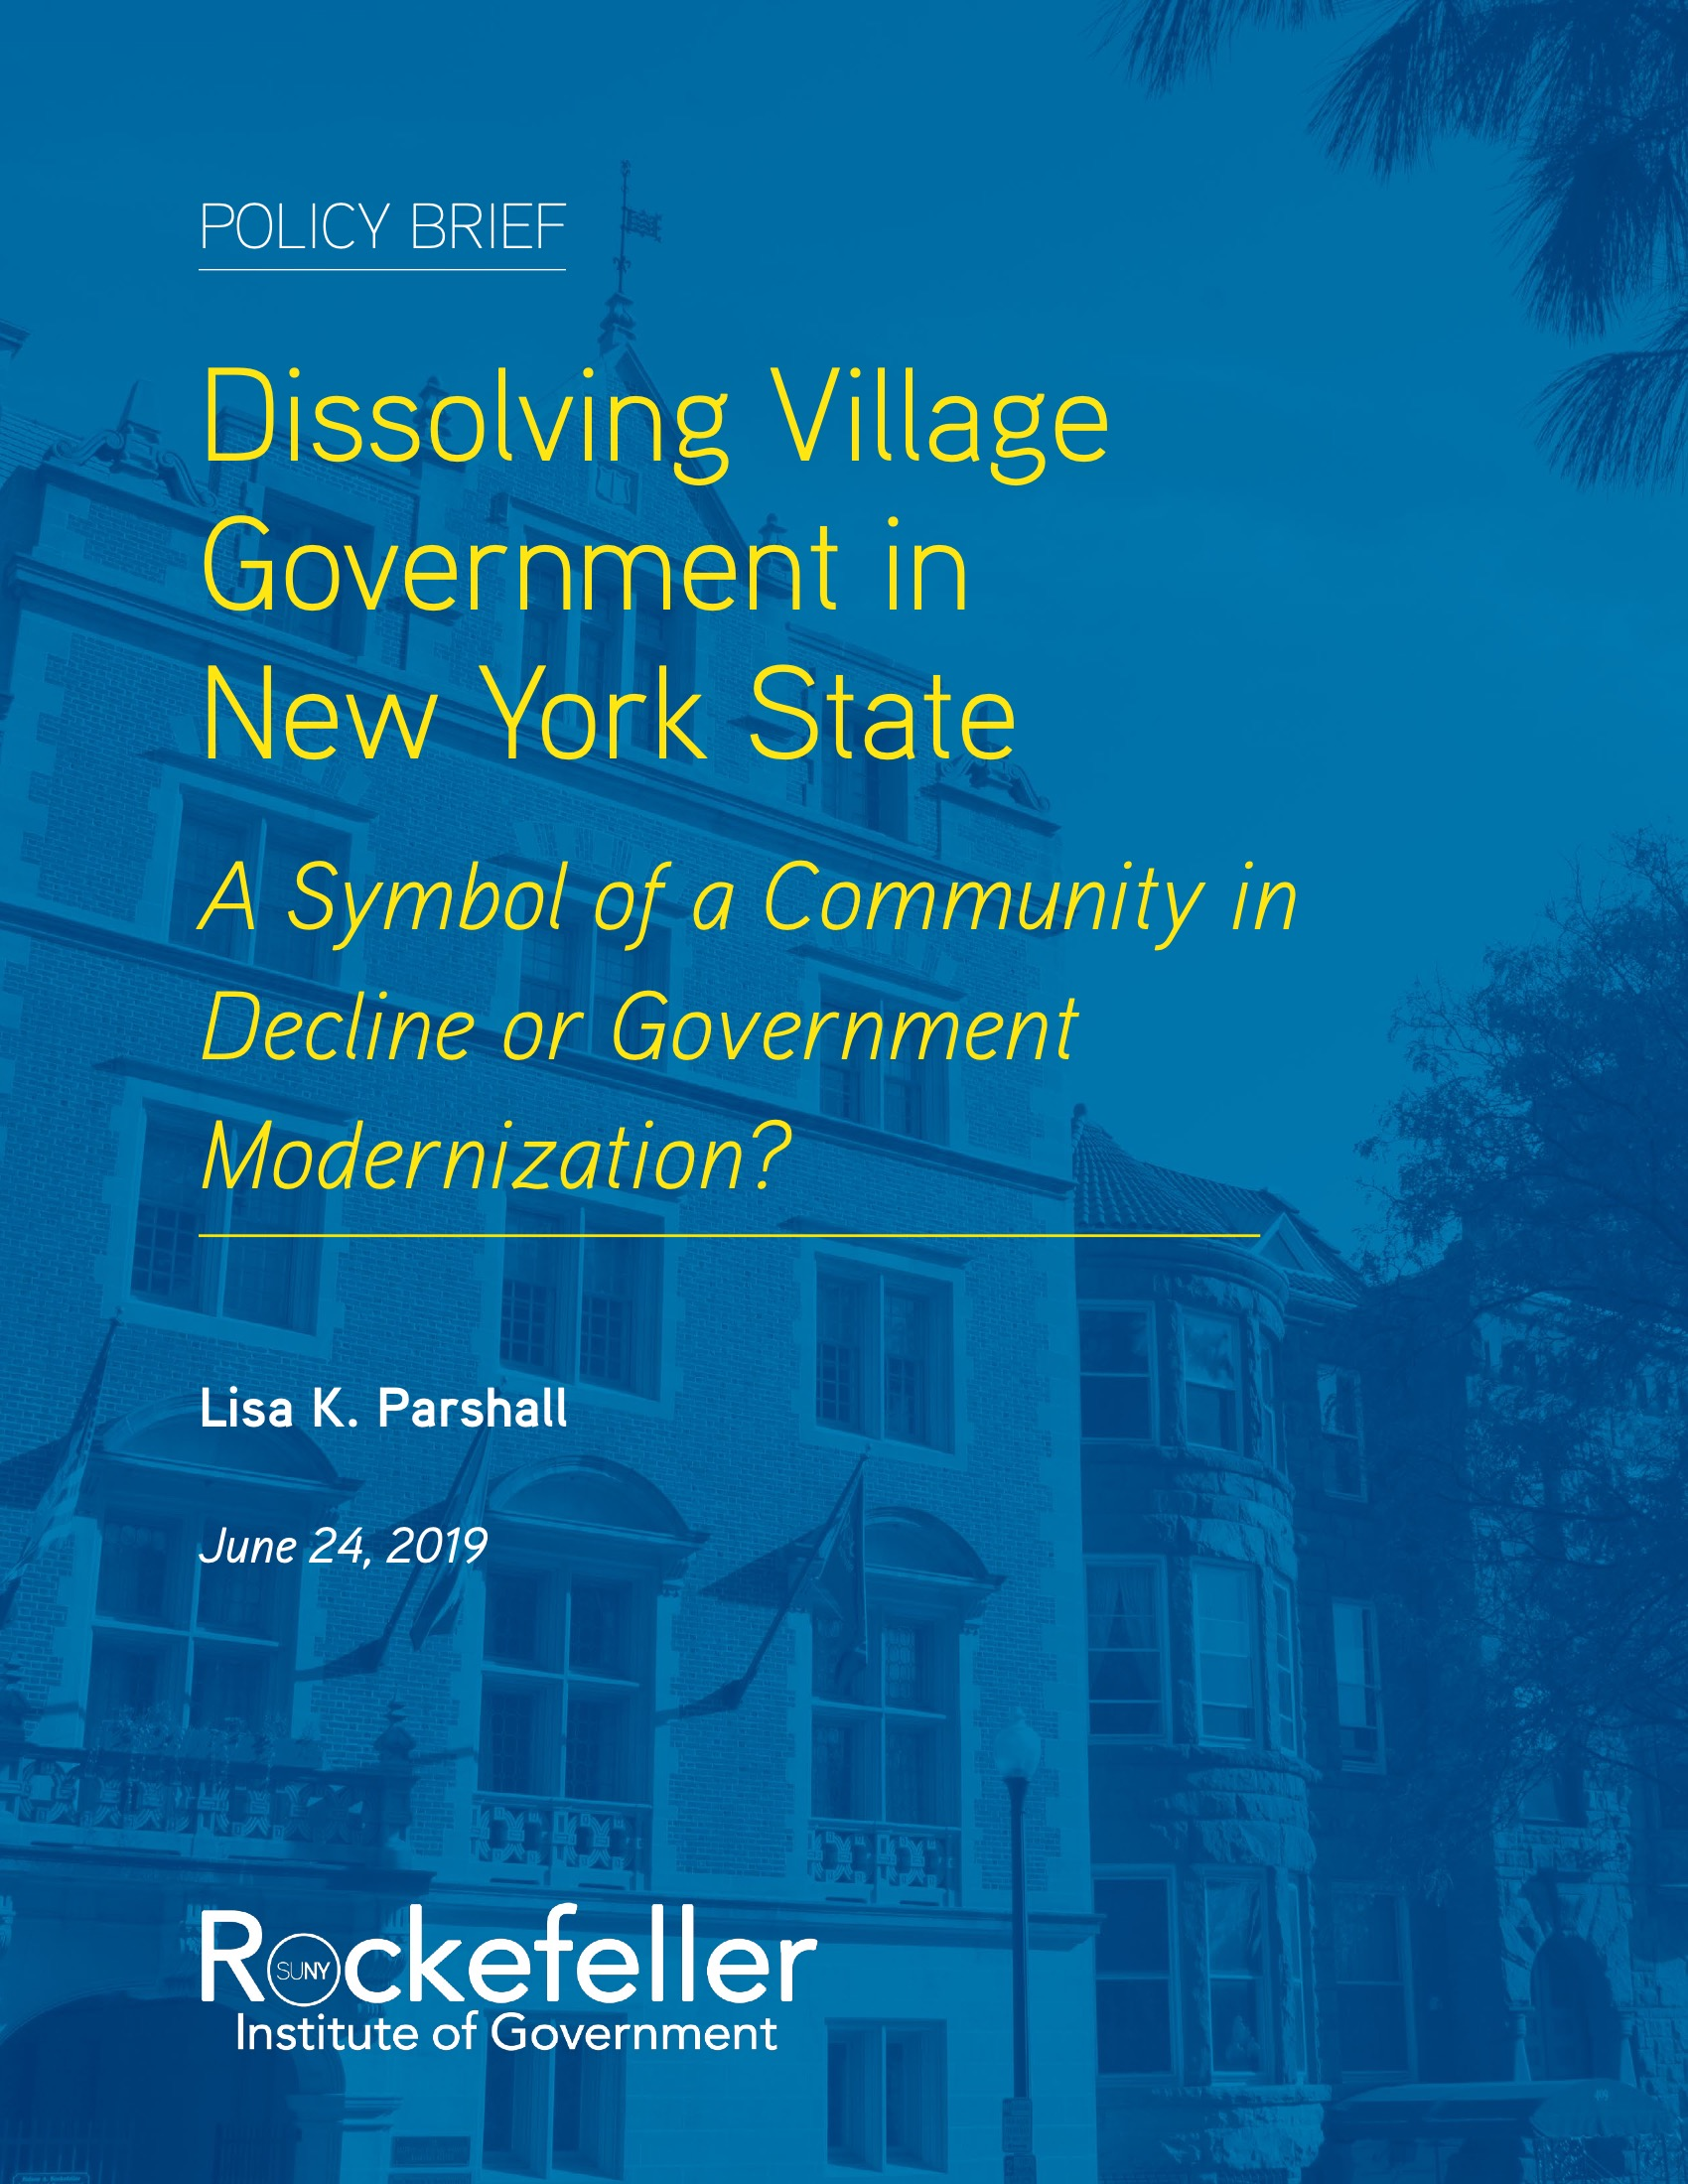 Dissolving-Village-Government-in-NYS.jpeg